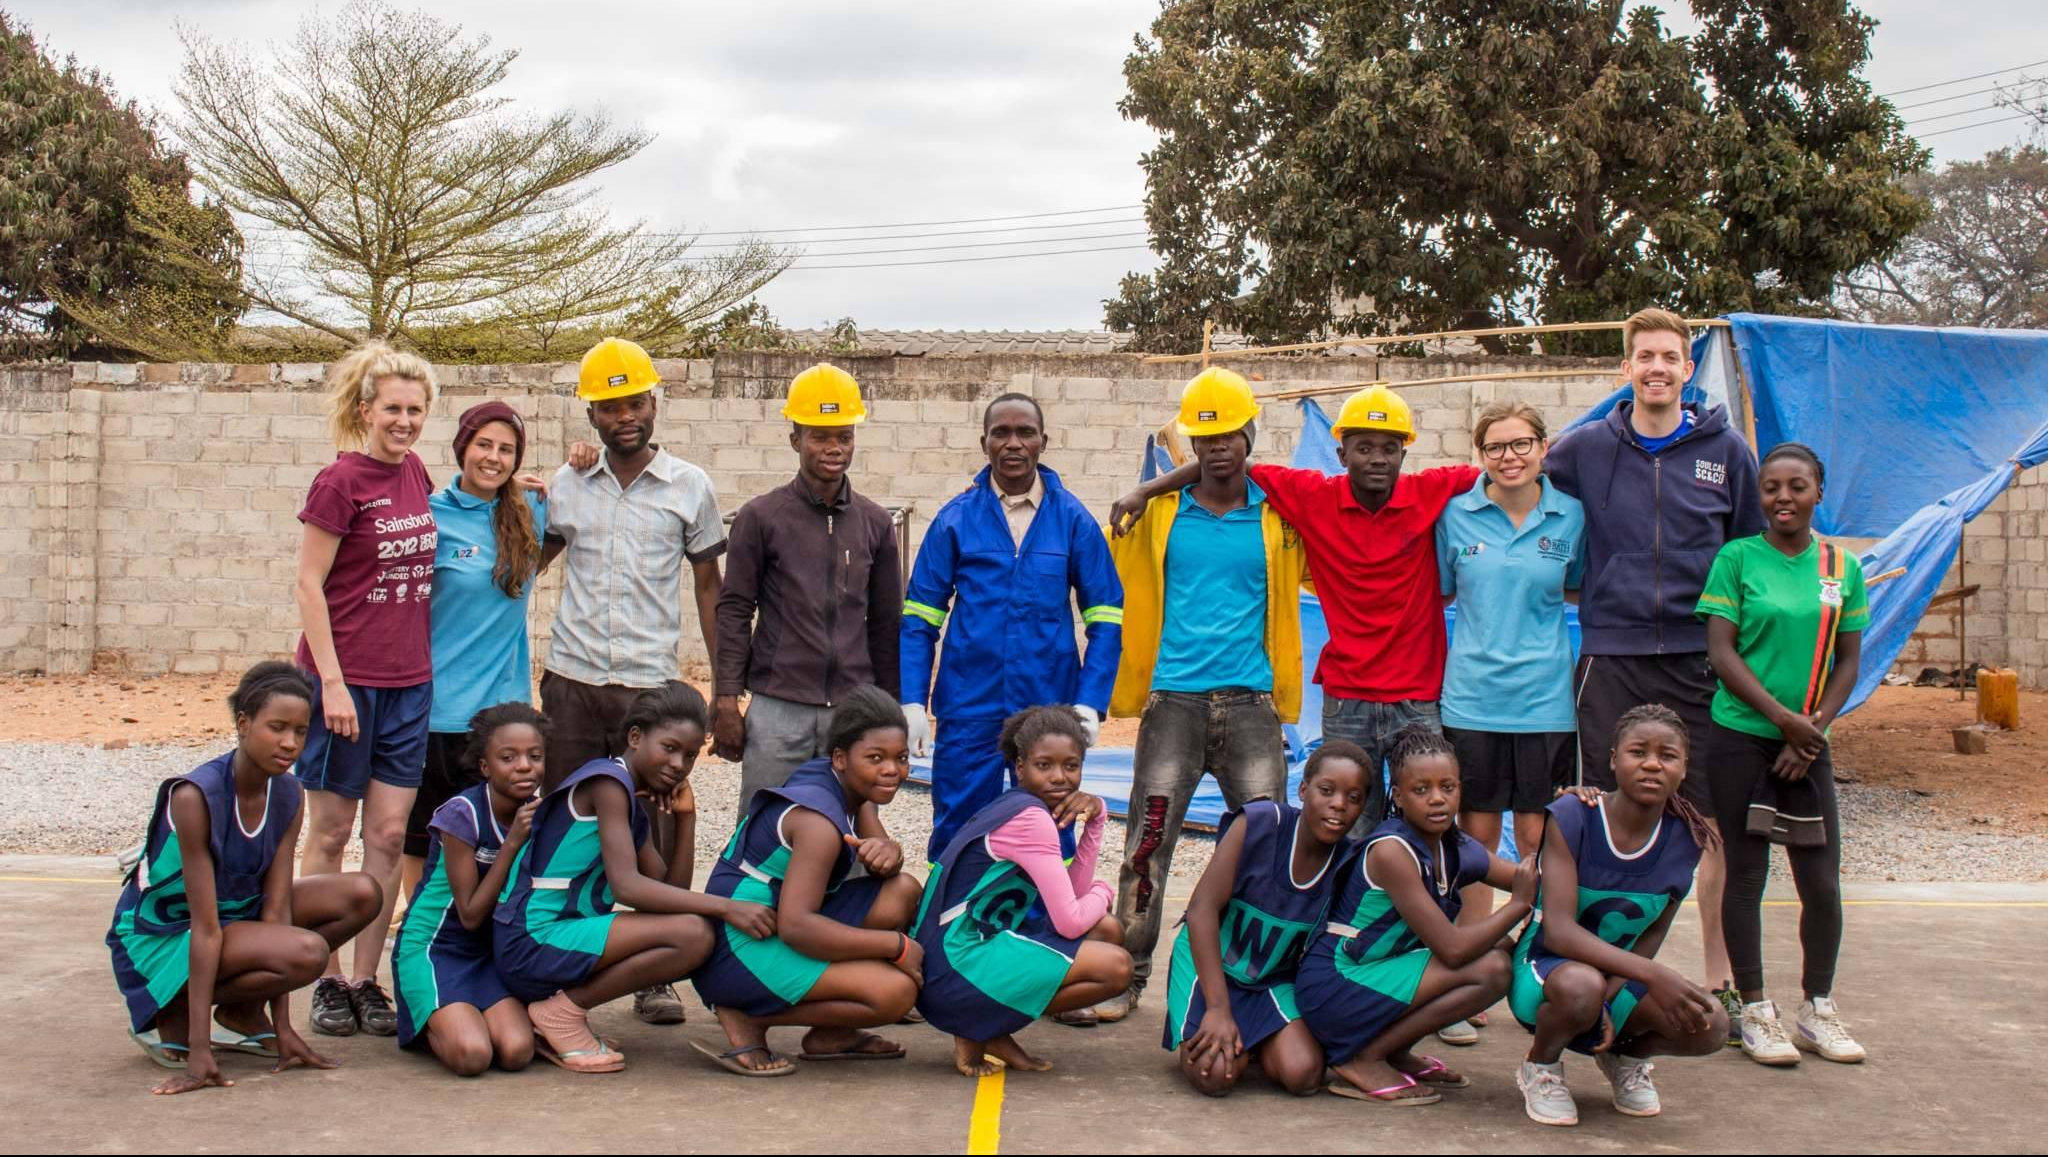 Zambian netball players and contractors with the University of Bath team